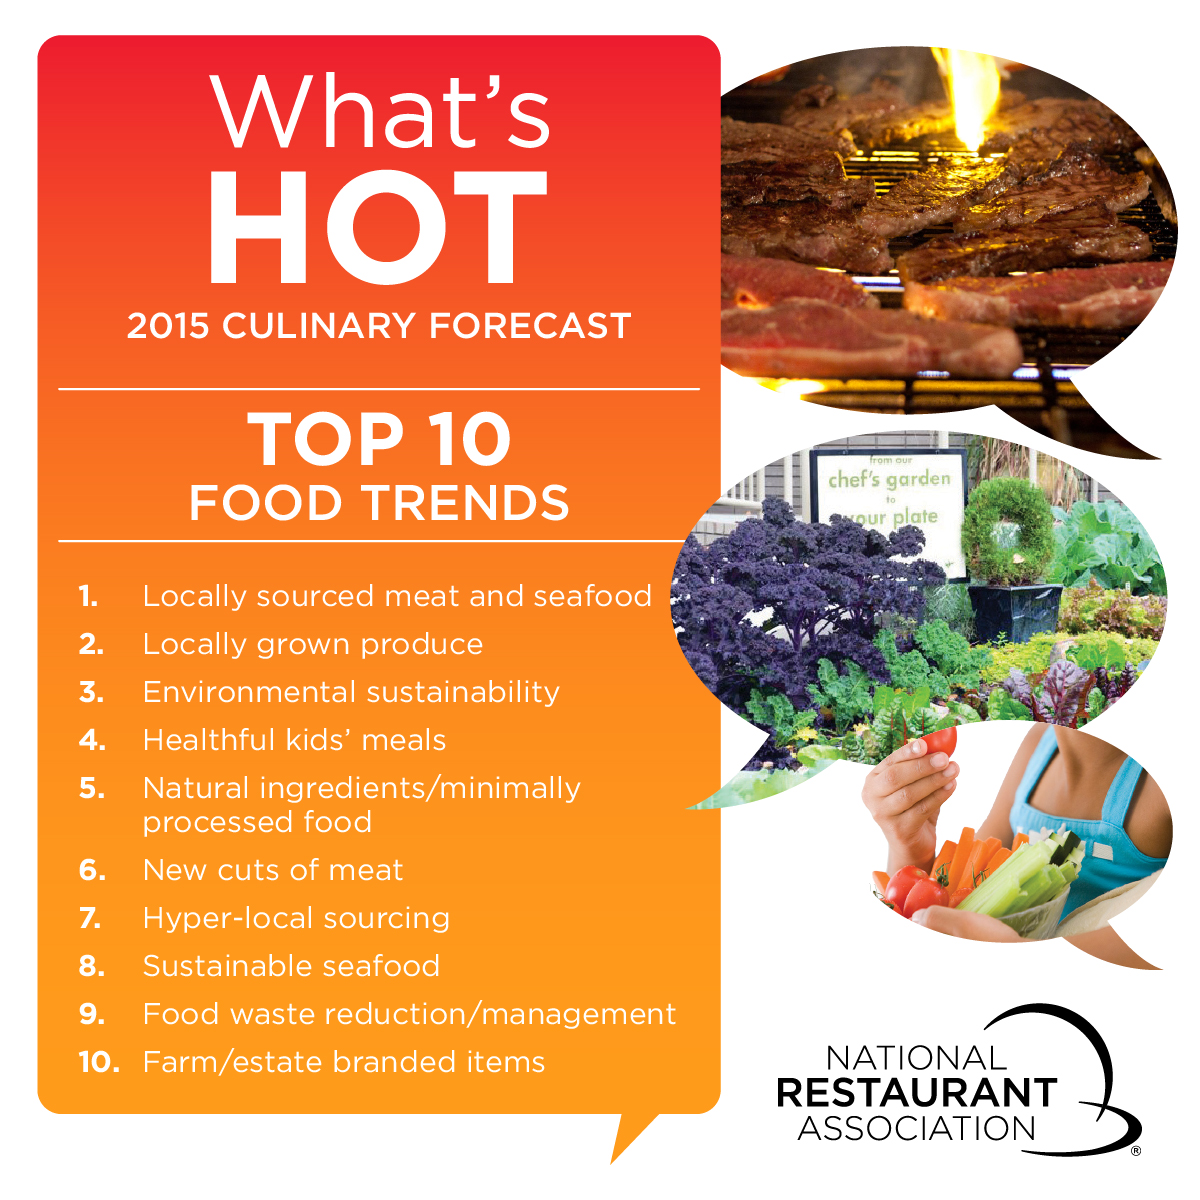 What's Hot 2015